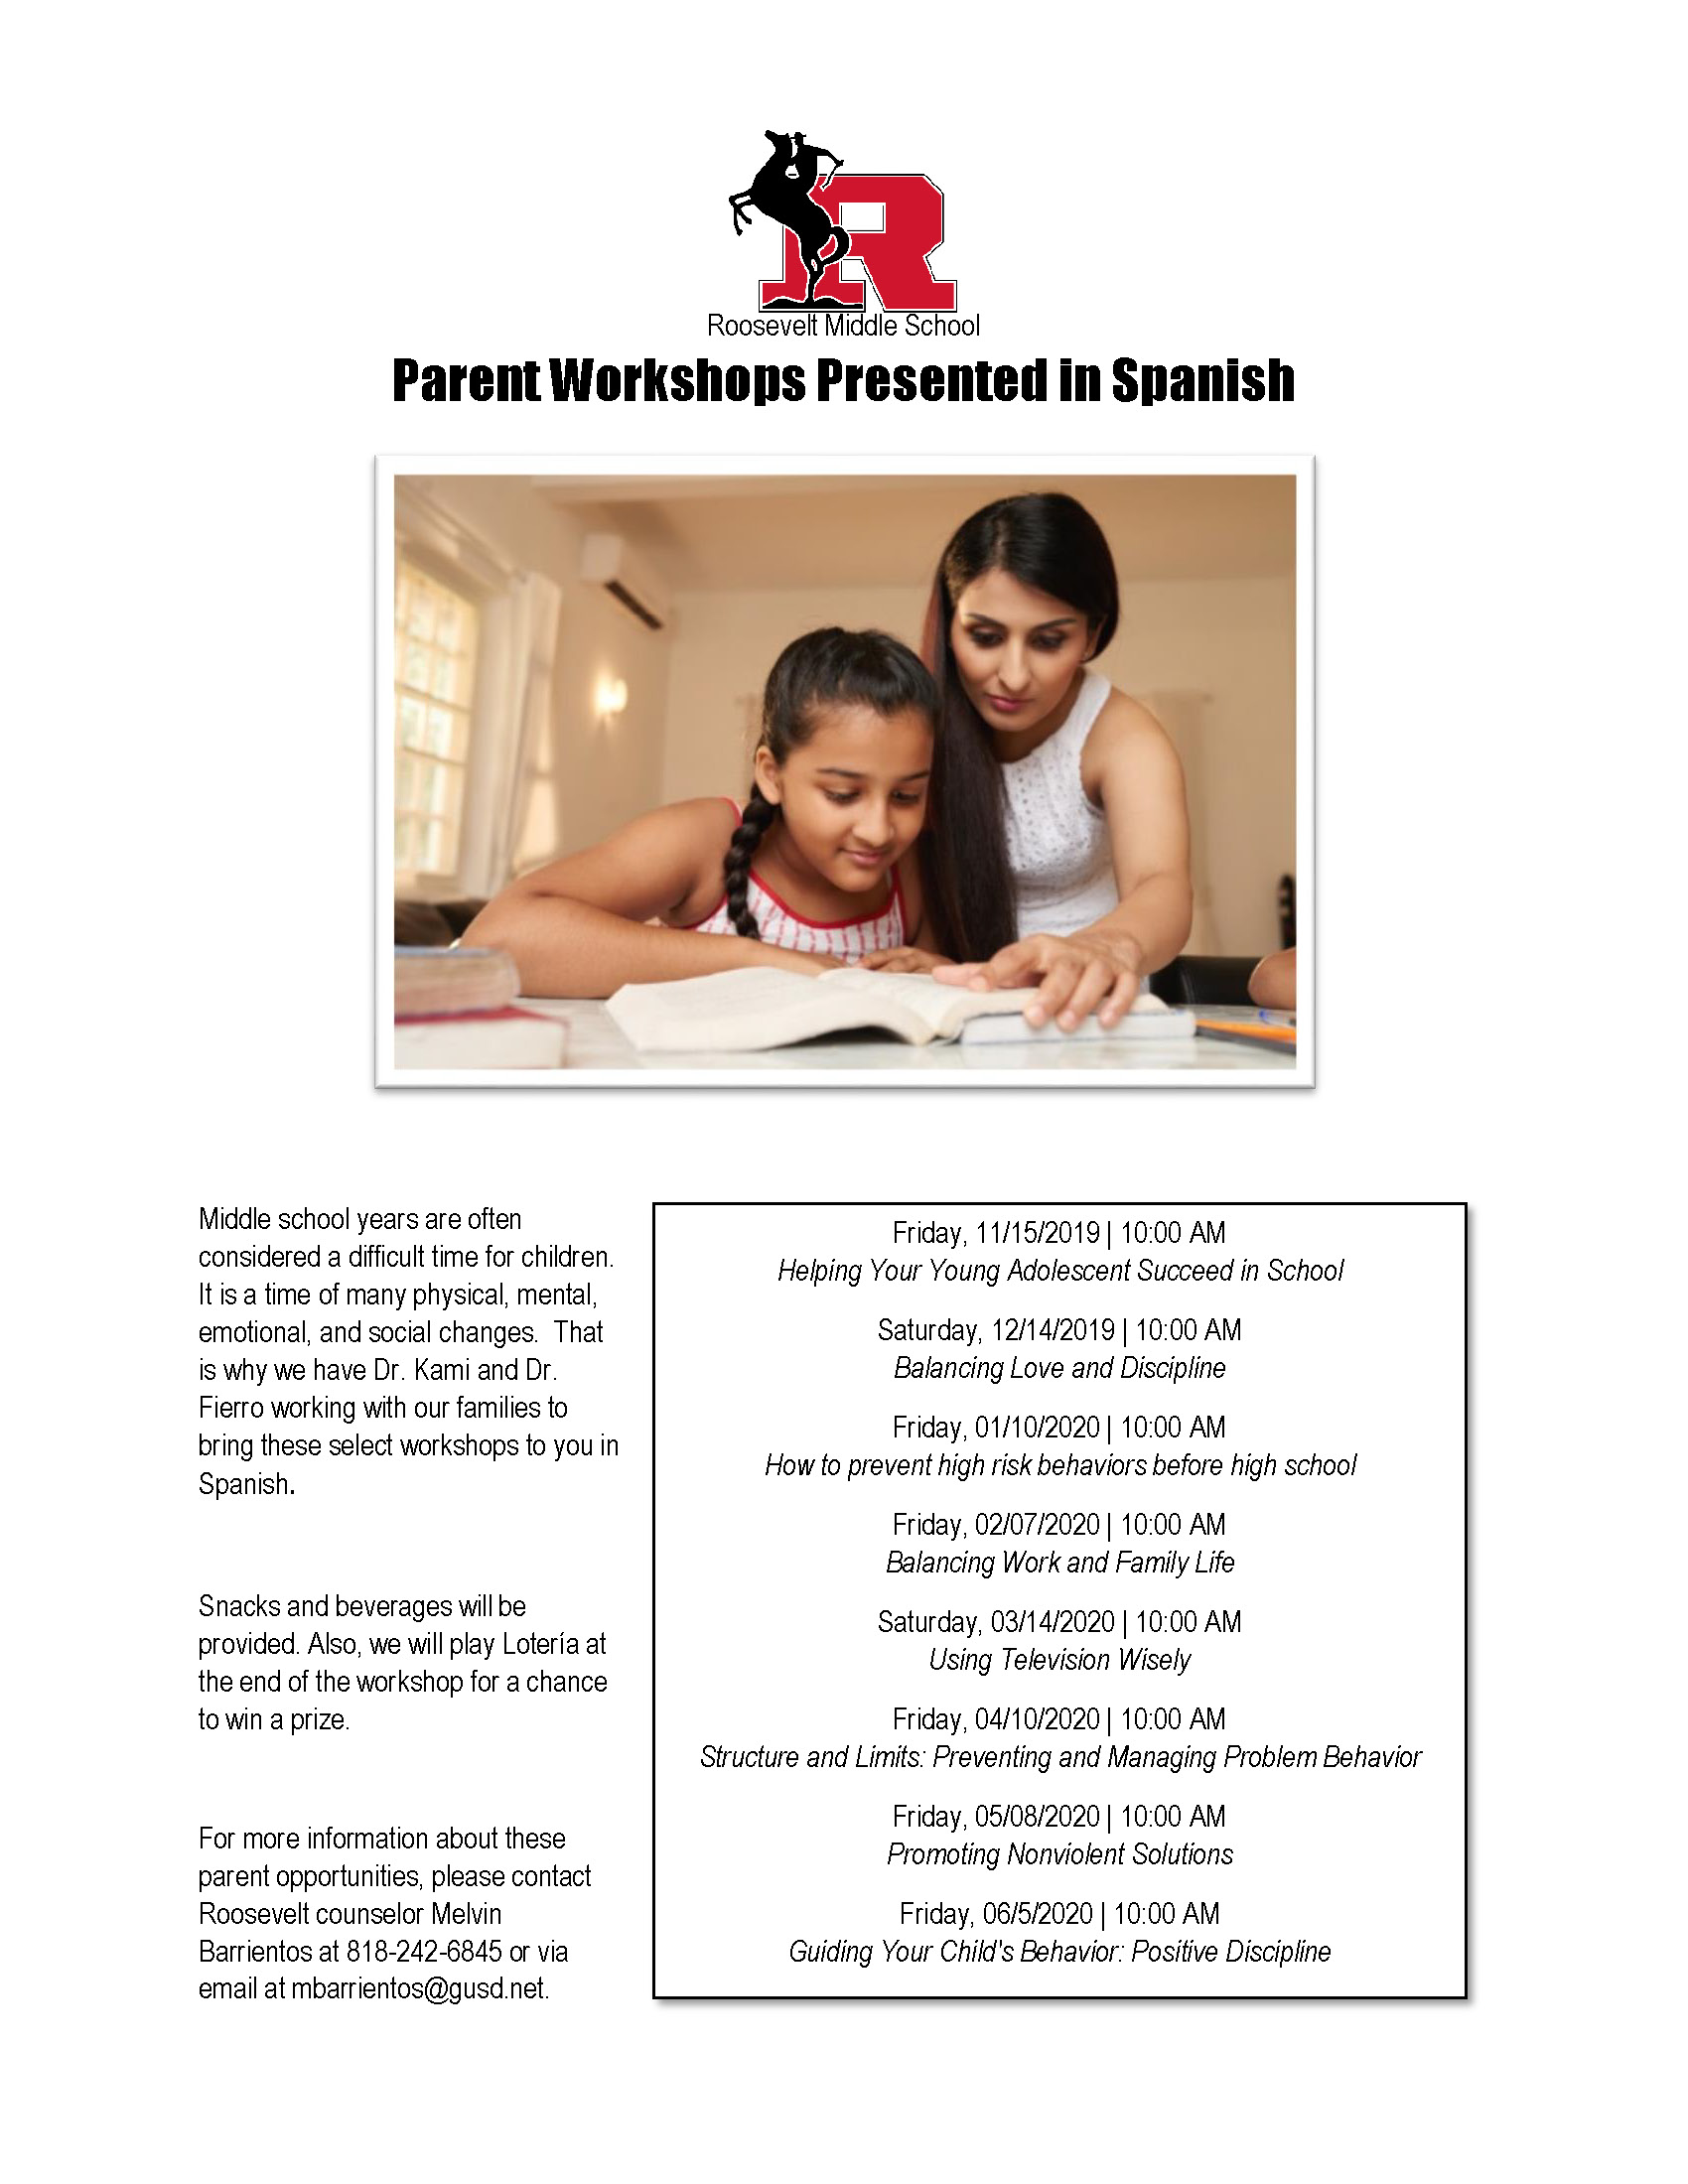 Parent Workshops Presented in Spanish/Talleres Para Padres